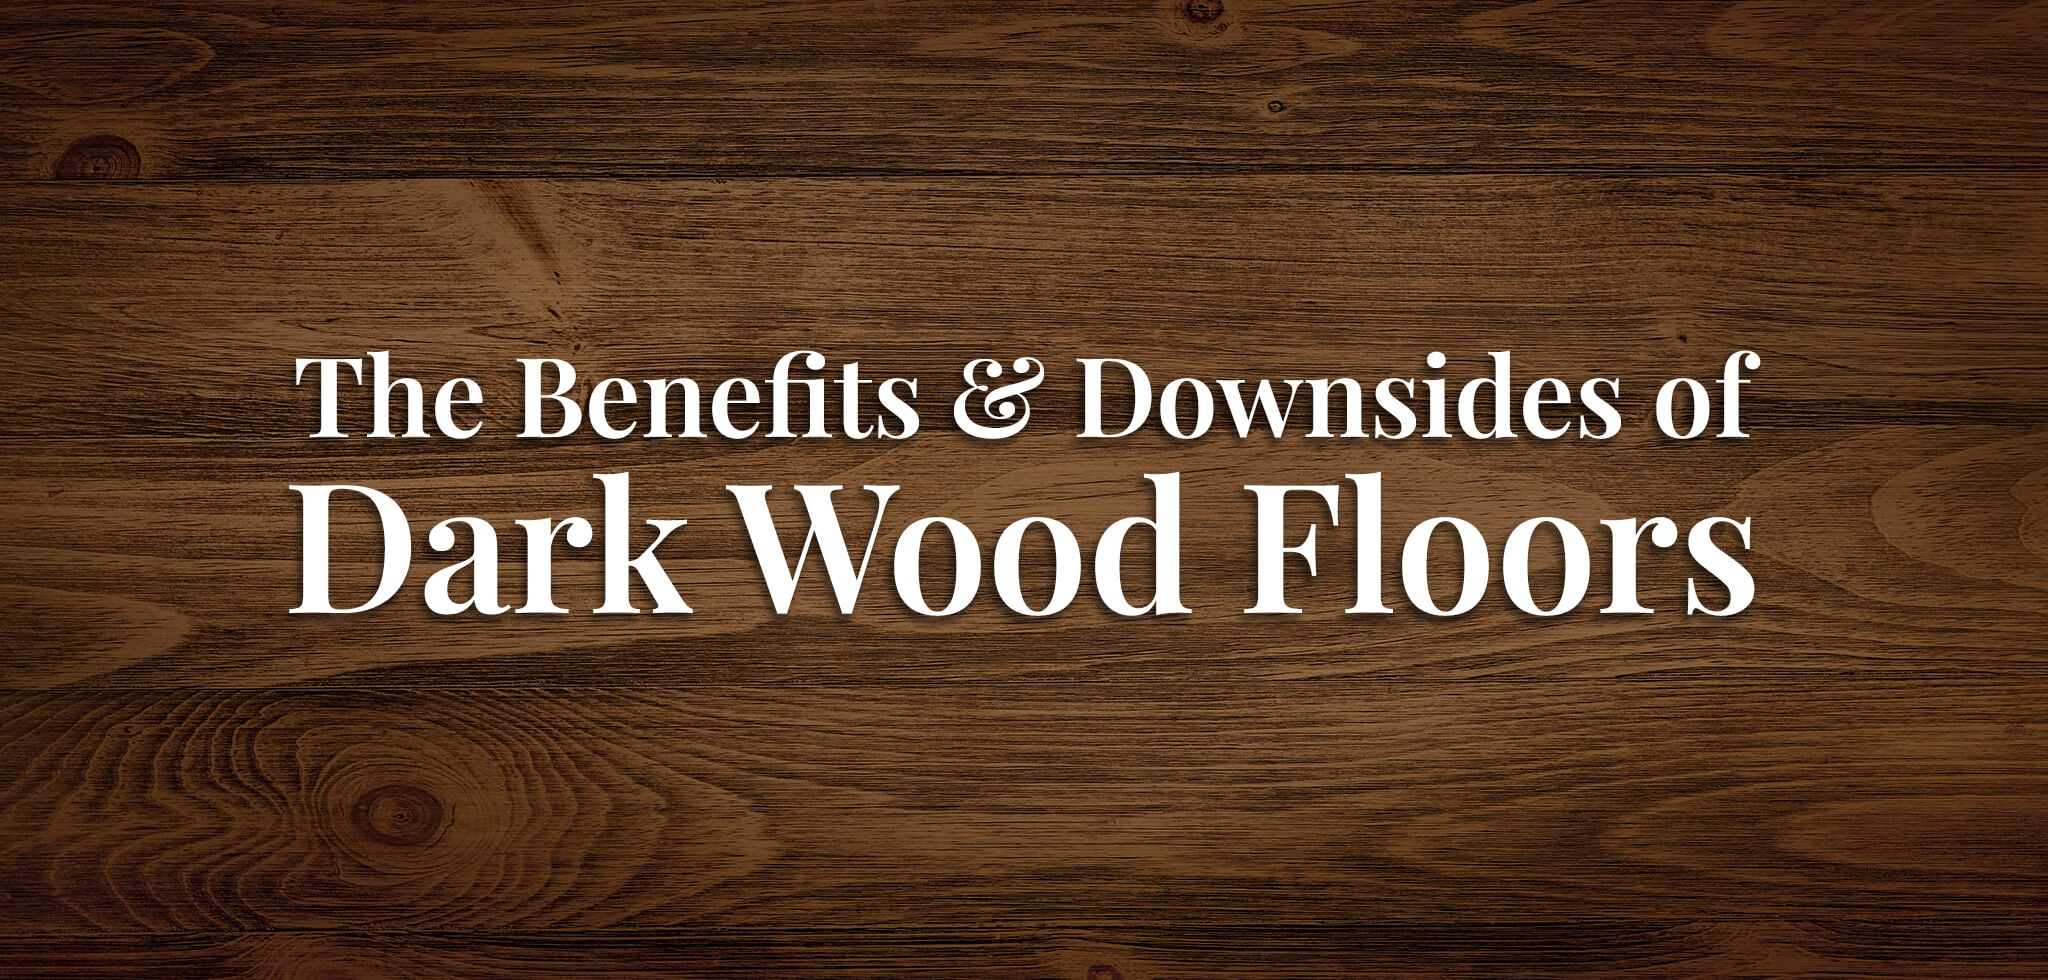 The Benefits & Downsides of Dark Wood Floors